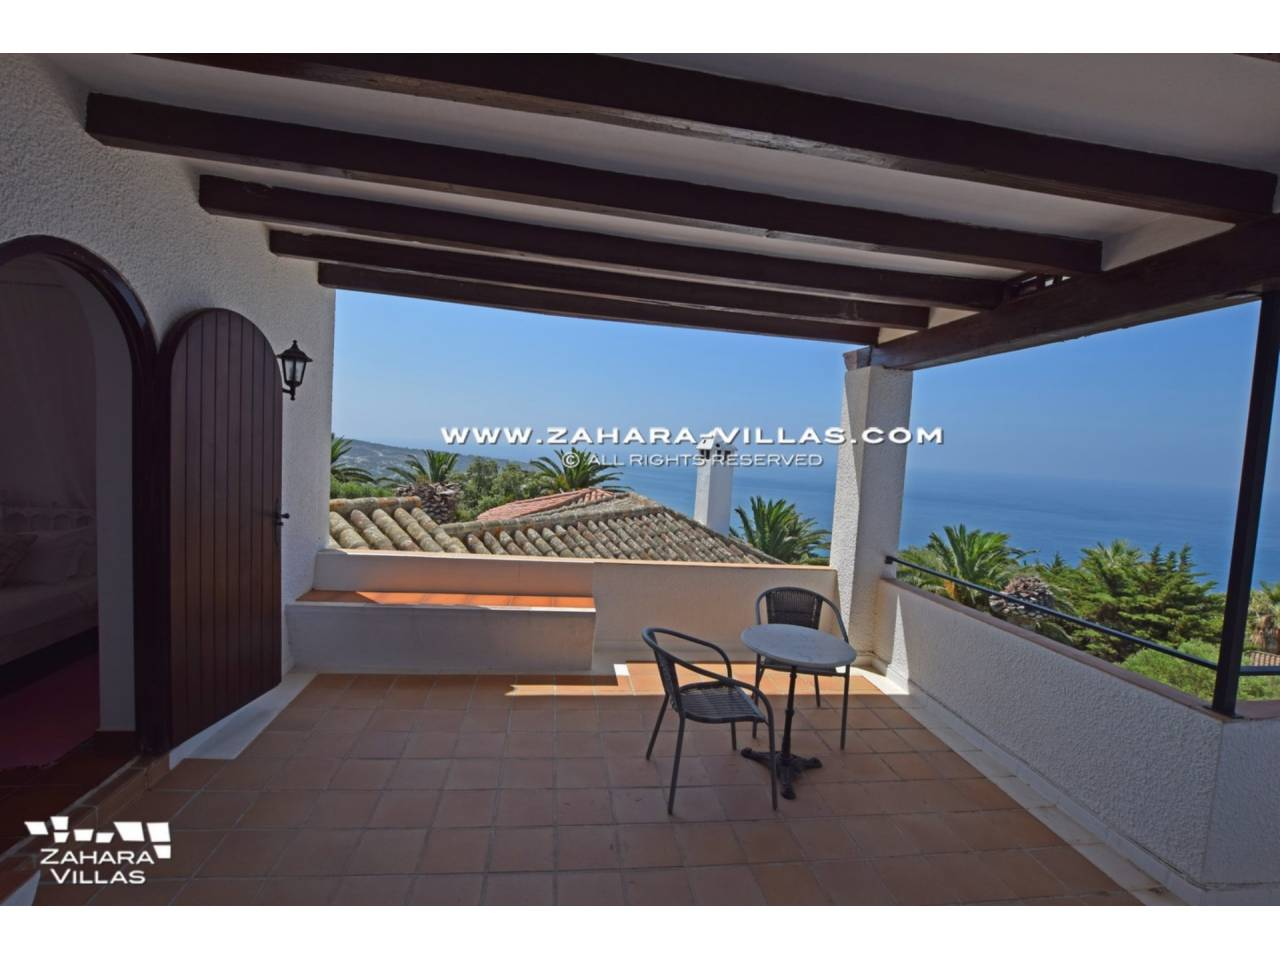 Imagen 8 de Wonderful Villa for sale in Atlanterra-Zahara de los Atunes